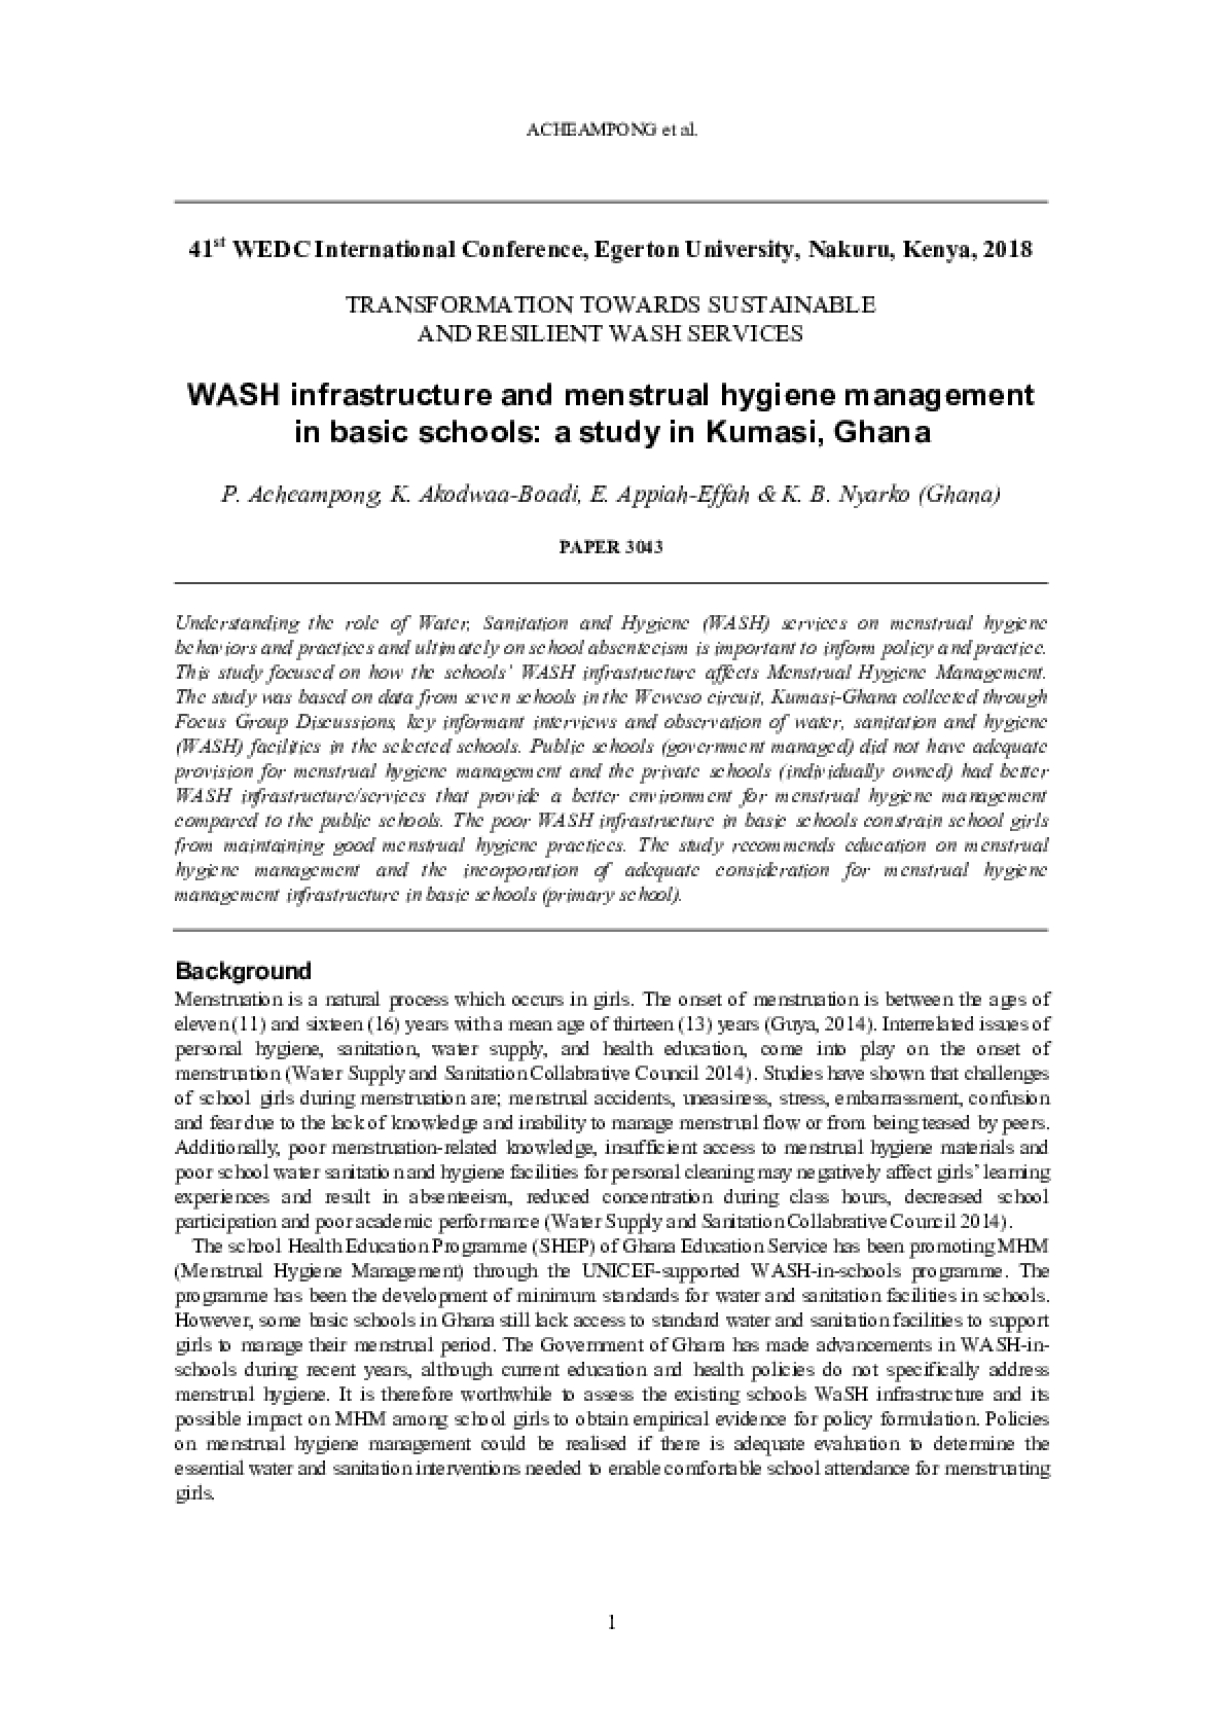 WASH Infrastructure and Menstrual Hygiene Management in Basic Schools - A Study in Kumasi, Ghana.